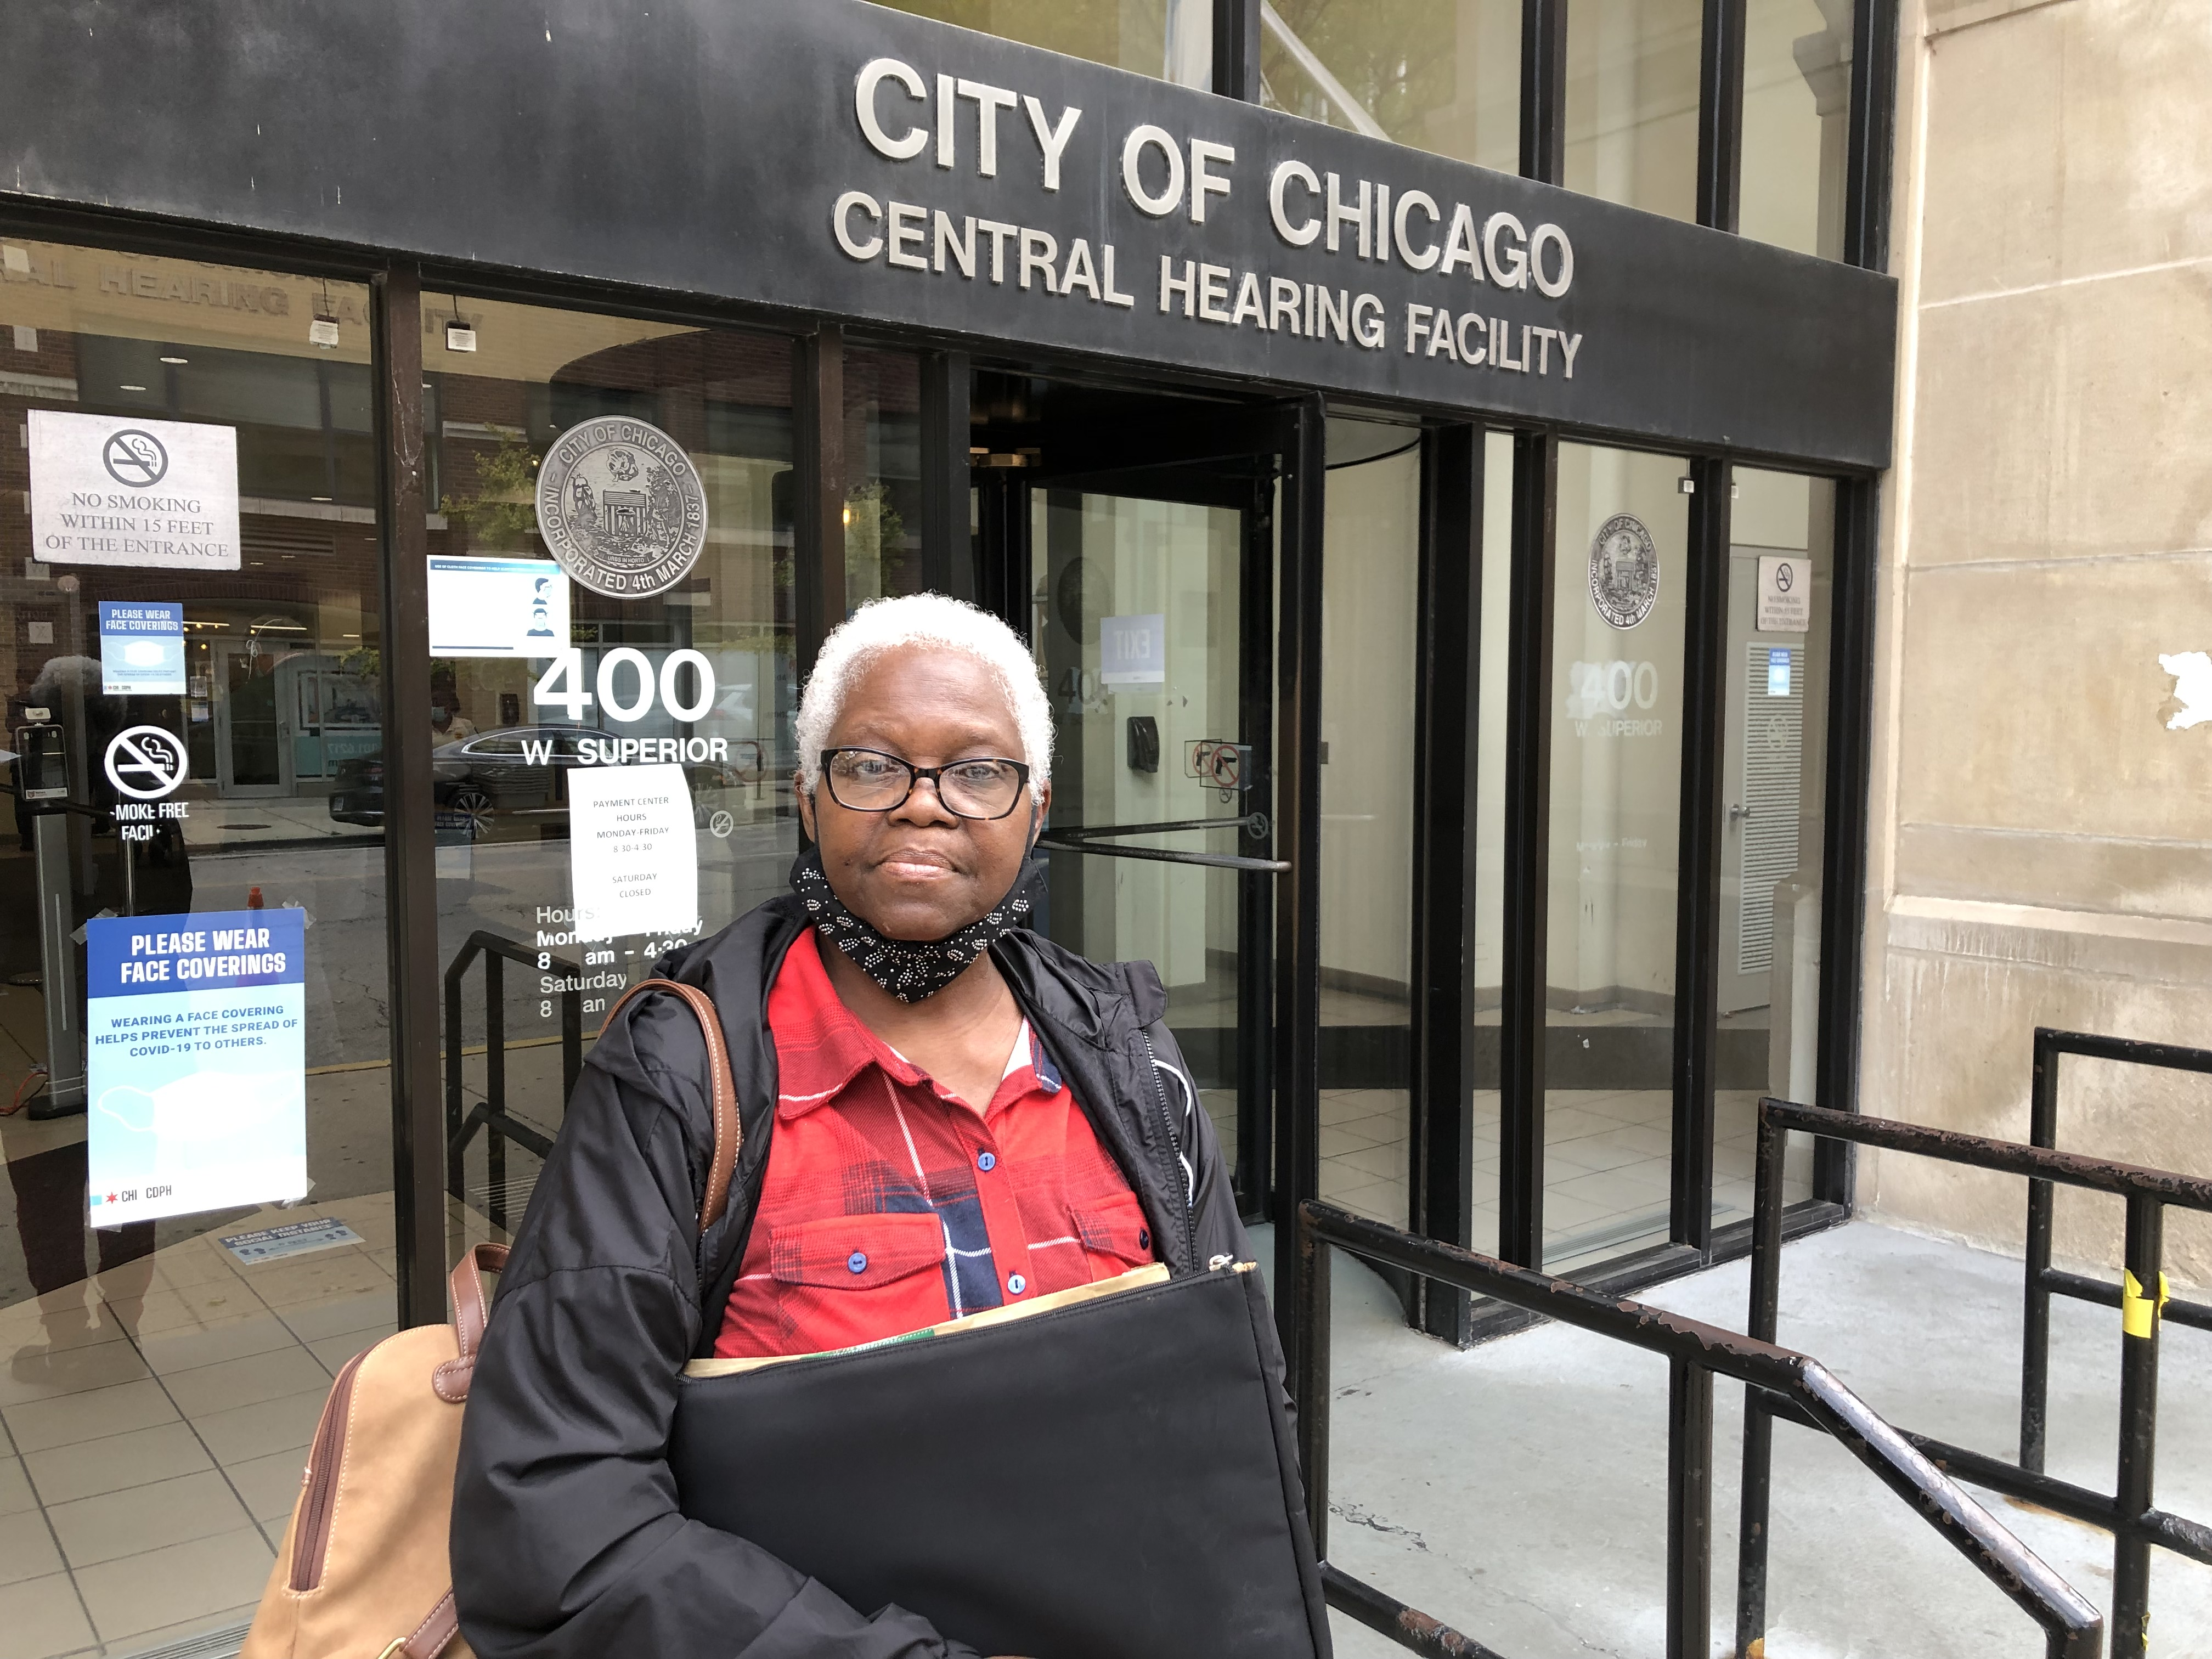 Wanda Carter, 70, moved out of her Englewood home in 2008 after the bank foreclosed. But City Hall keeps fining her for property's maintenance.